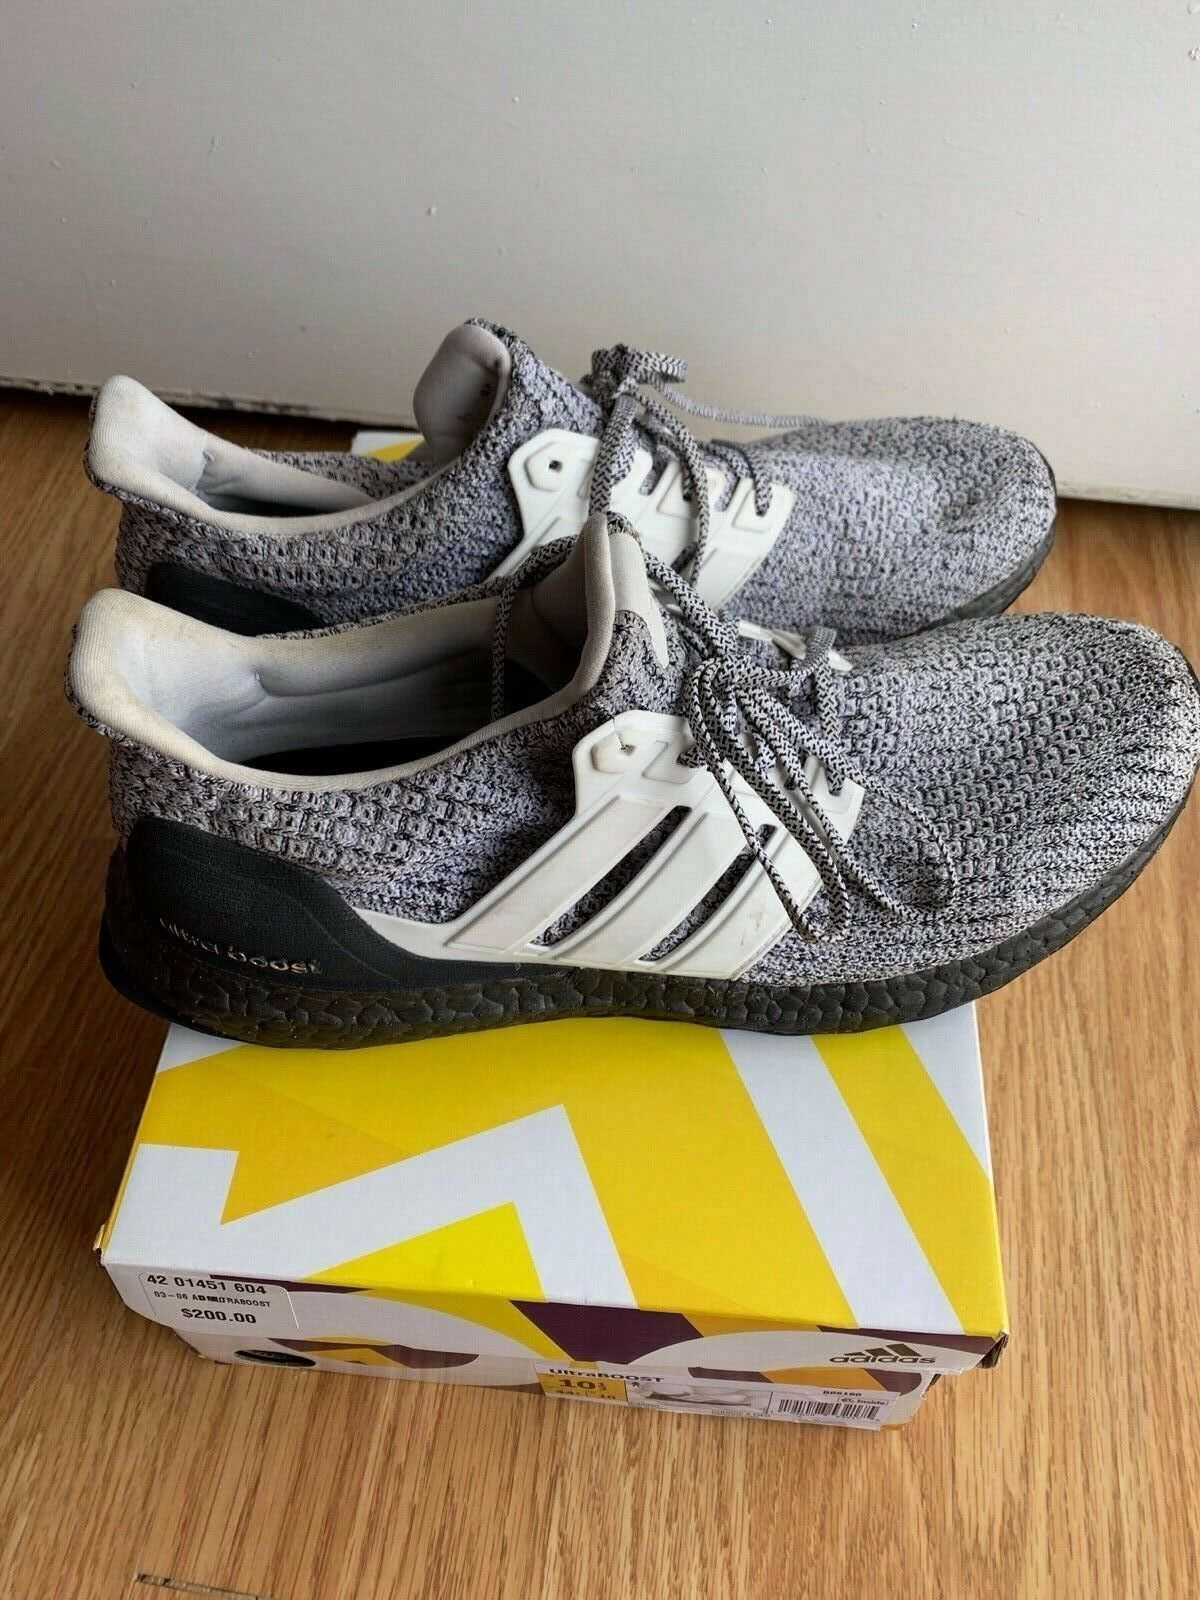 ad37c90a20fbc Adidas Ultra BOOST 4.0 Oreo BB6180 Cookies and Cream LTD Men s Size 10.5 US